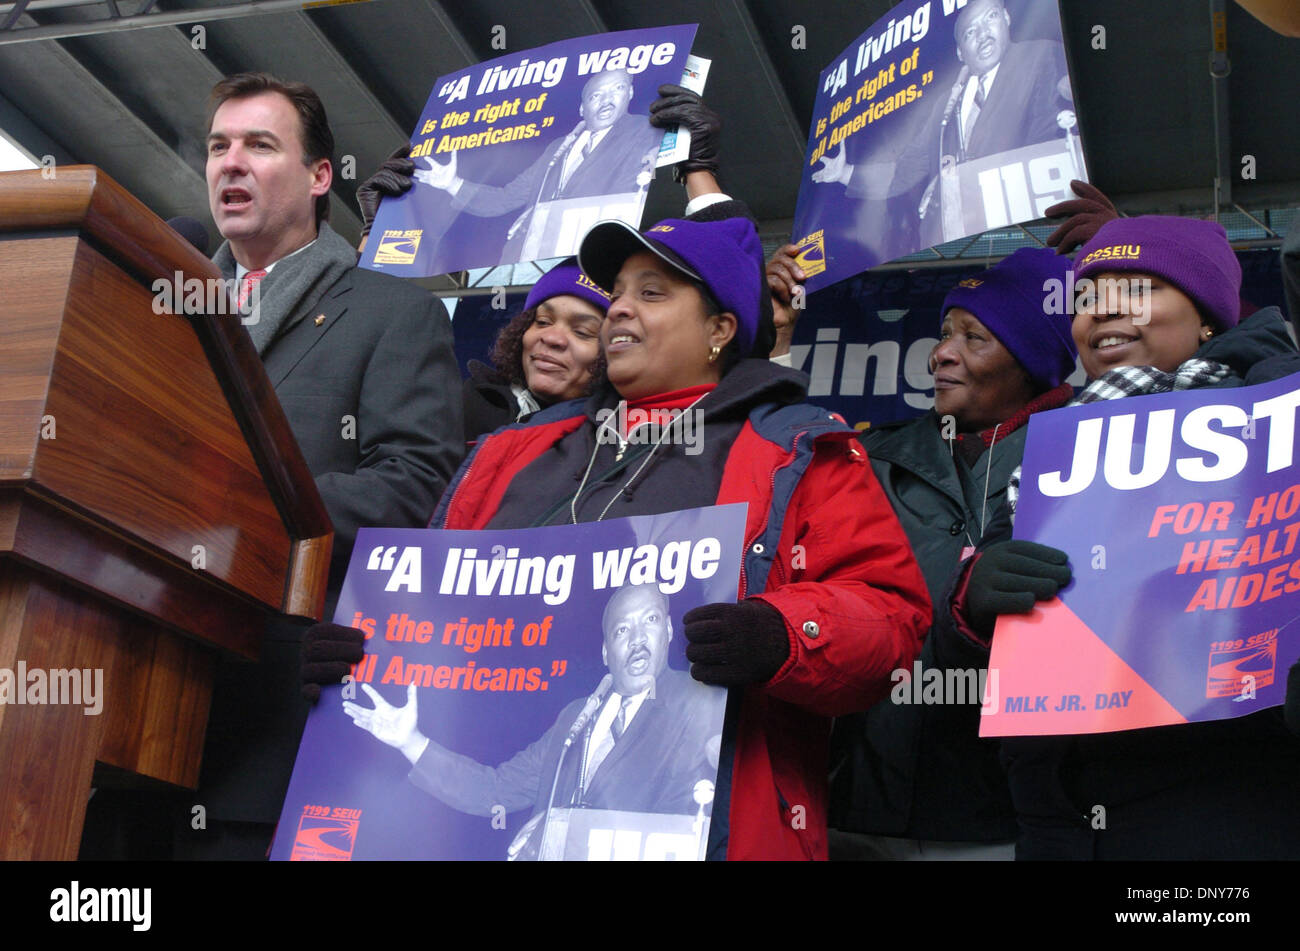 Jan 16, 2006; Manhattan, New York, USA; Nassau County Executive TOM SUOZZI speaks as thousands of members and supporters of 1199 Service Employees International Union (SEIU) honor Dr. Martin Luther King with a march and rally in Harlem demanding justice for home health aides. 30,000 Aides provide care for elderly and sick New Yorkers and make about $7 hour with no health benefits a - Stock Image